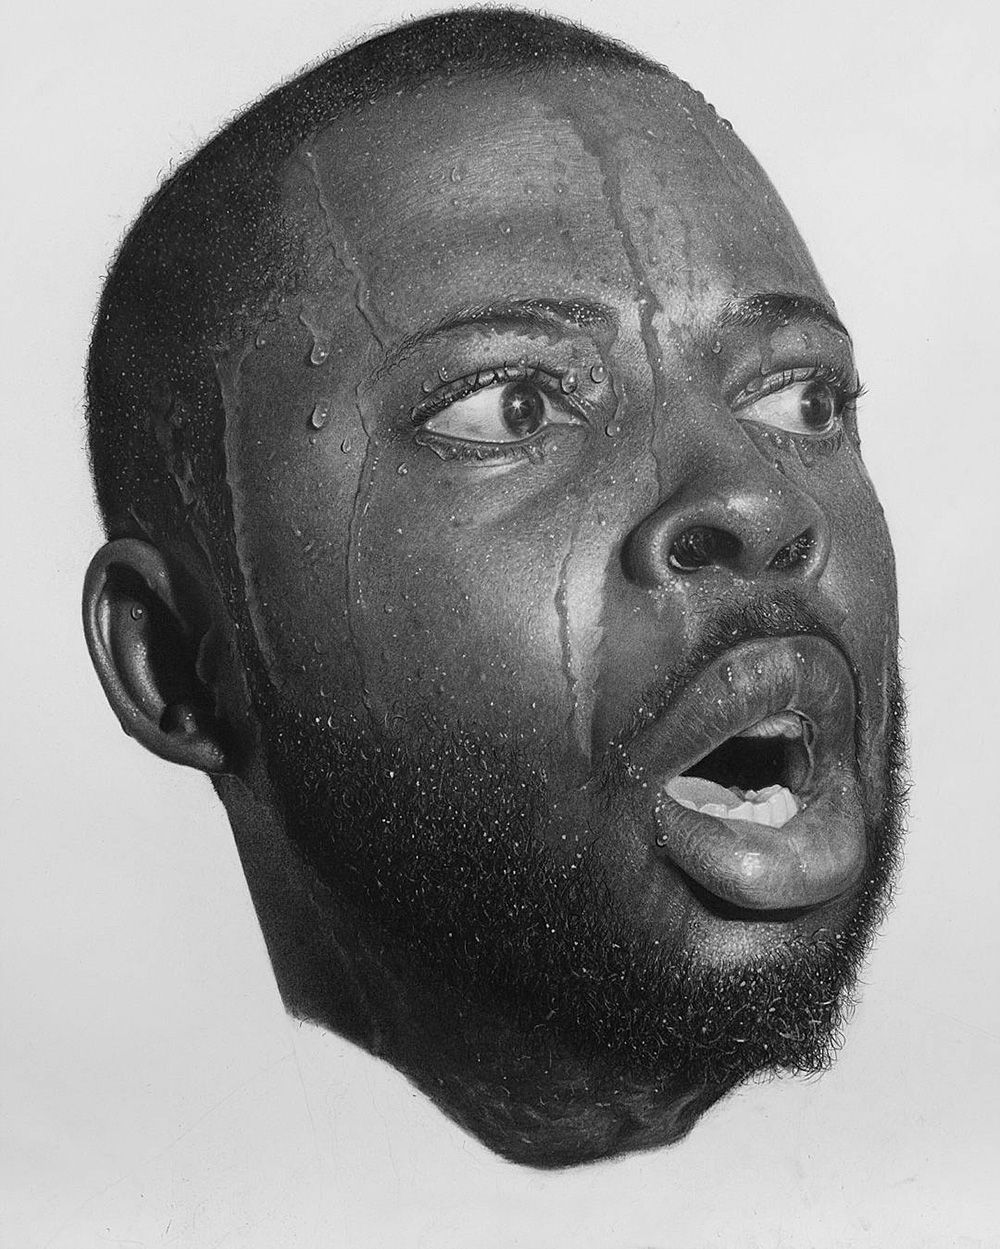 Larger-Than-Life Hyperrealistic Portraits Rendered in Graphite and Charcoal by Arinze Stanley | Colossal